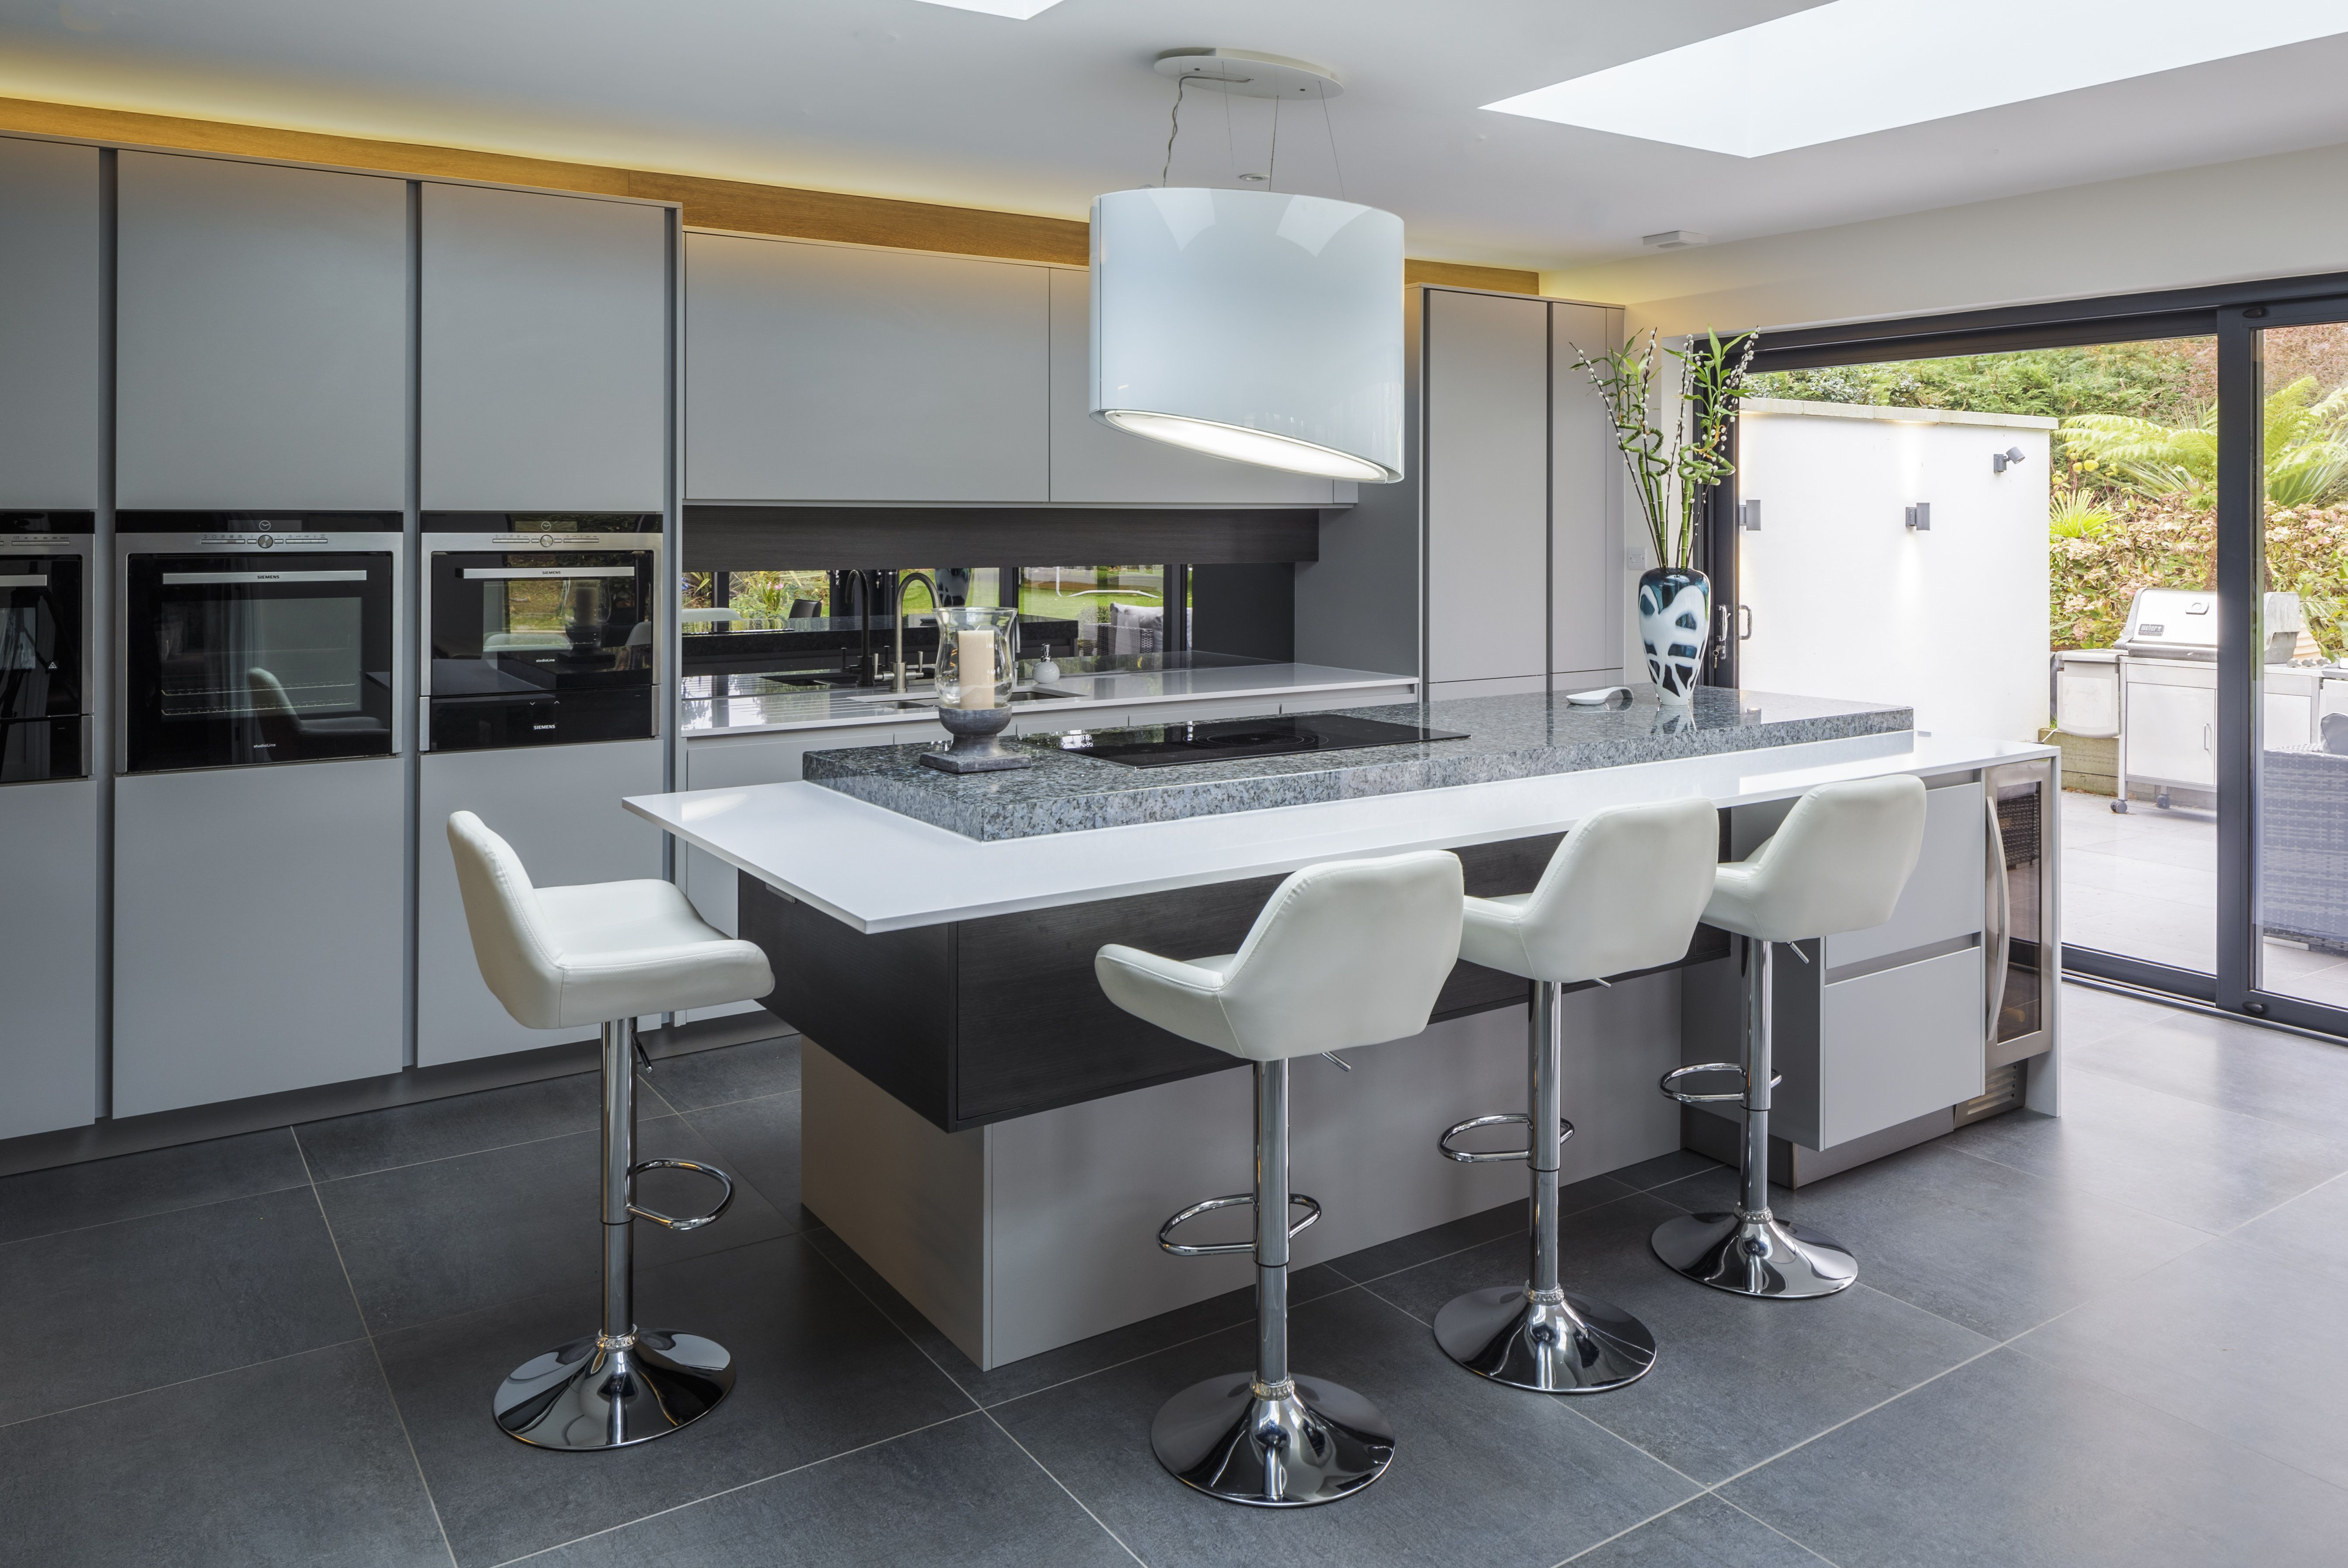 Best Pronorm Y Line Light Grey Kitchen Featured In This Open 400 x 300